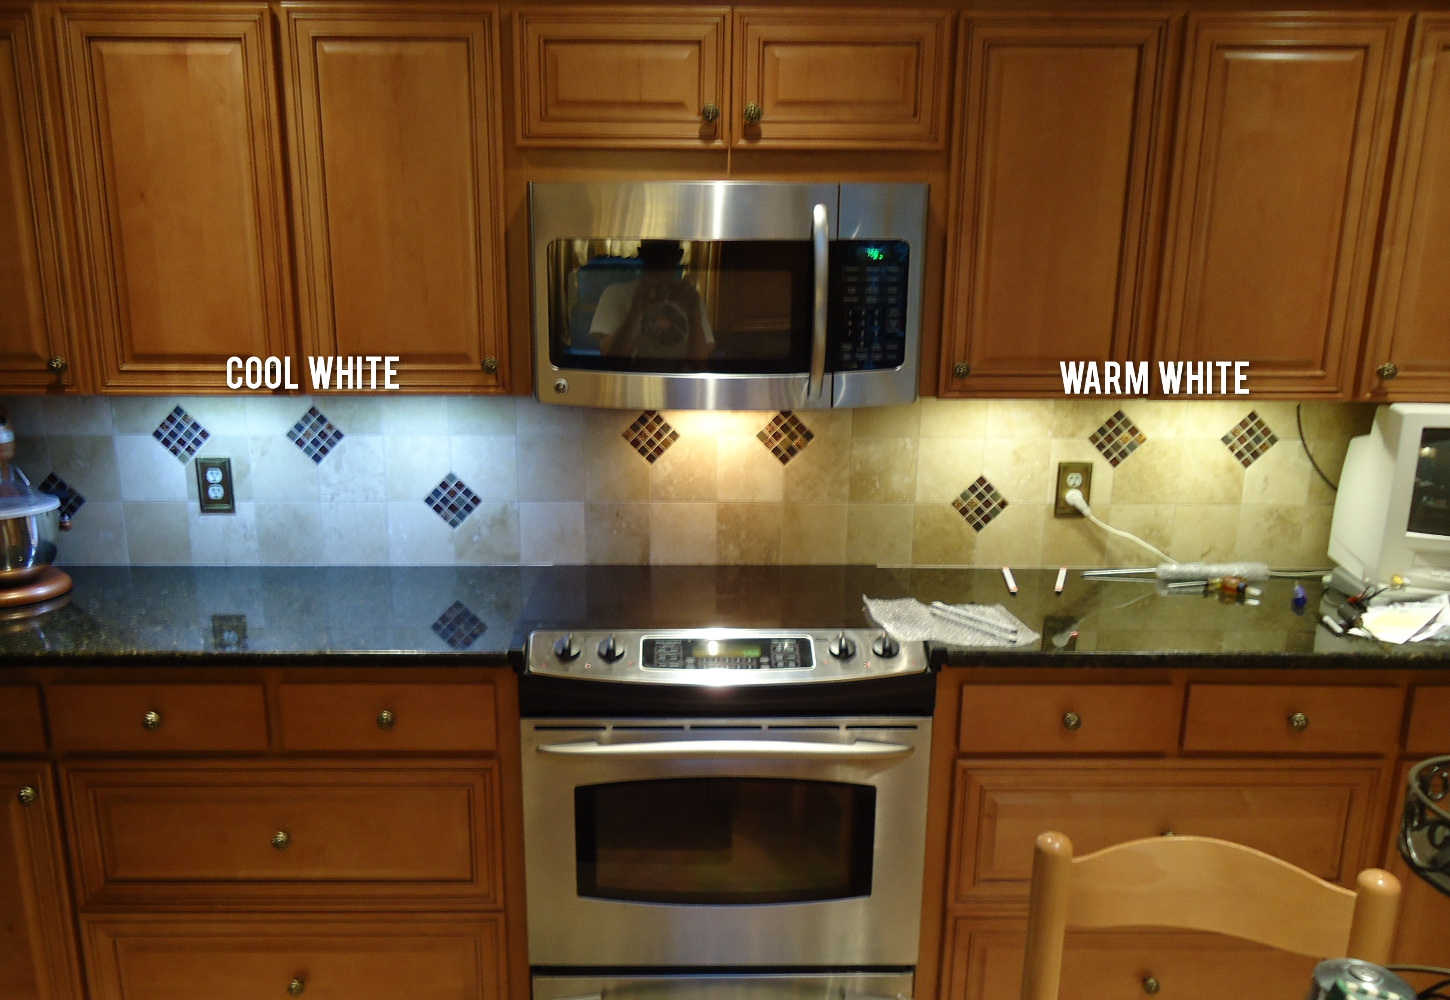 led light color temperature warm vs cool white led kitchen lights All of our LED lights are offered in two main colors Cool White and Warm White